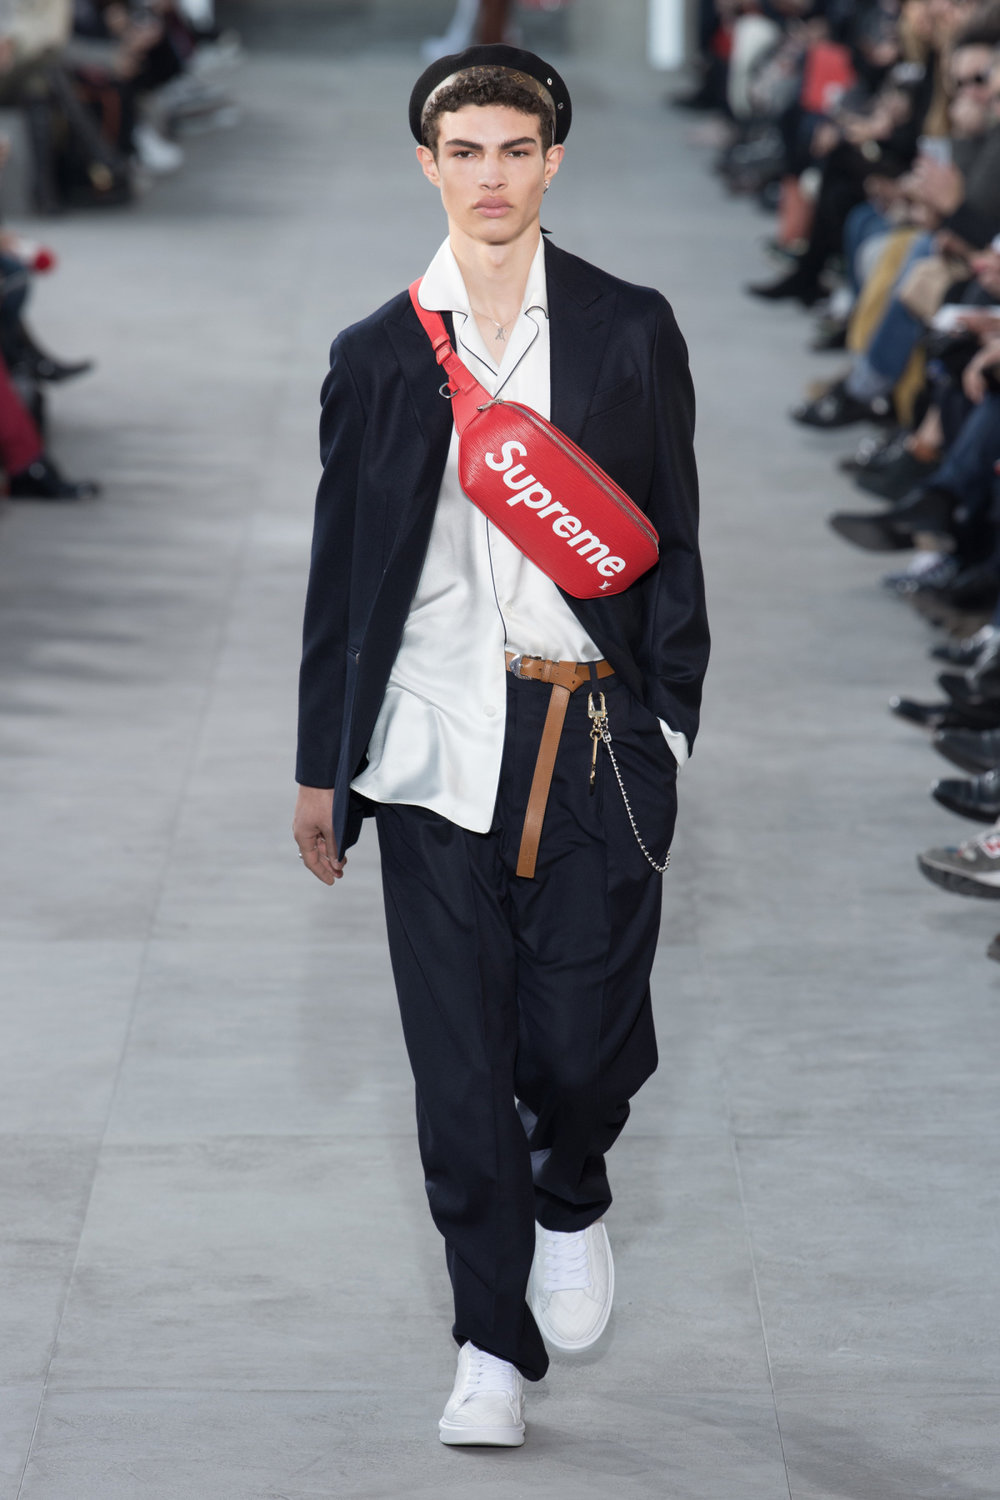 louis_vuitton_look_1_2017_aw_mens.jpeg